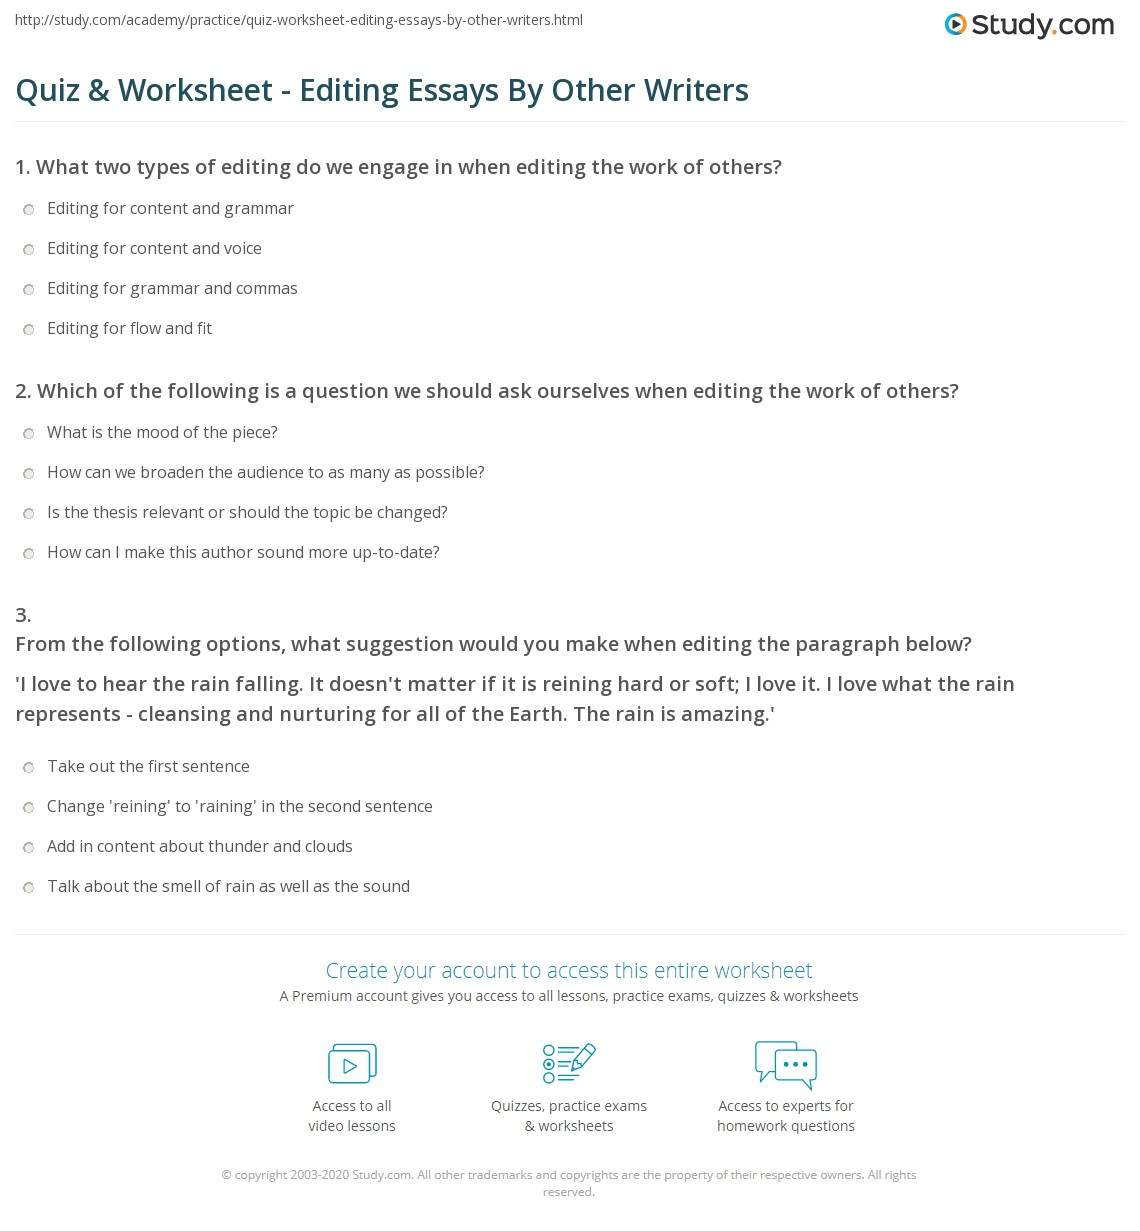 Quiz & Worksheet - Editing Essays By Other Writers | Study.com